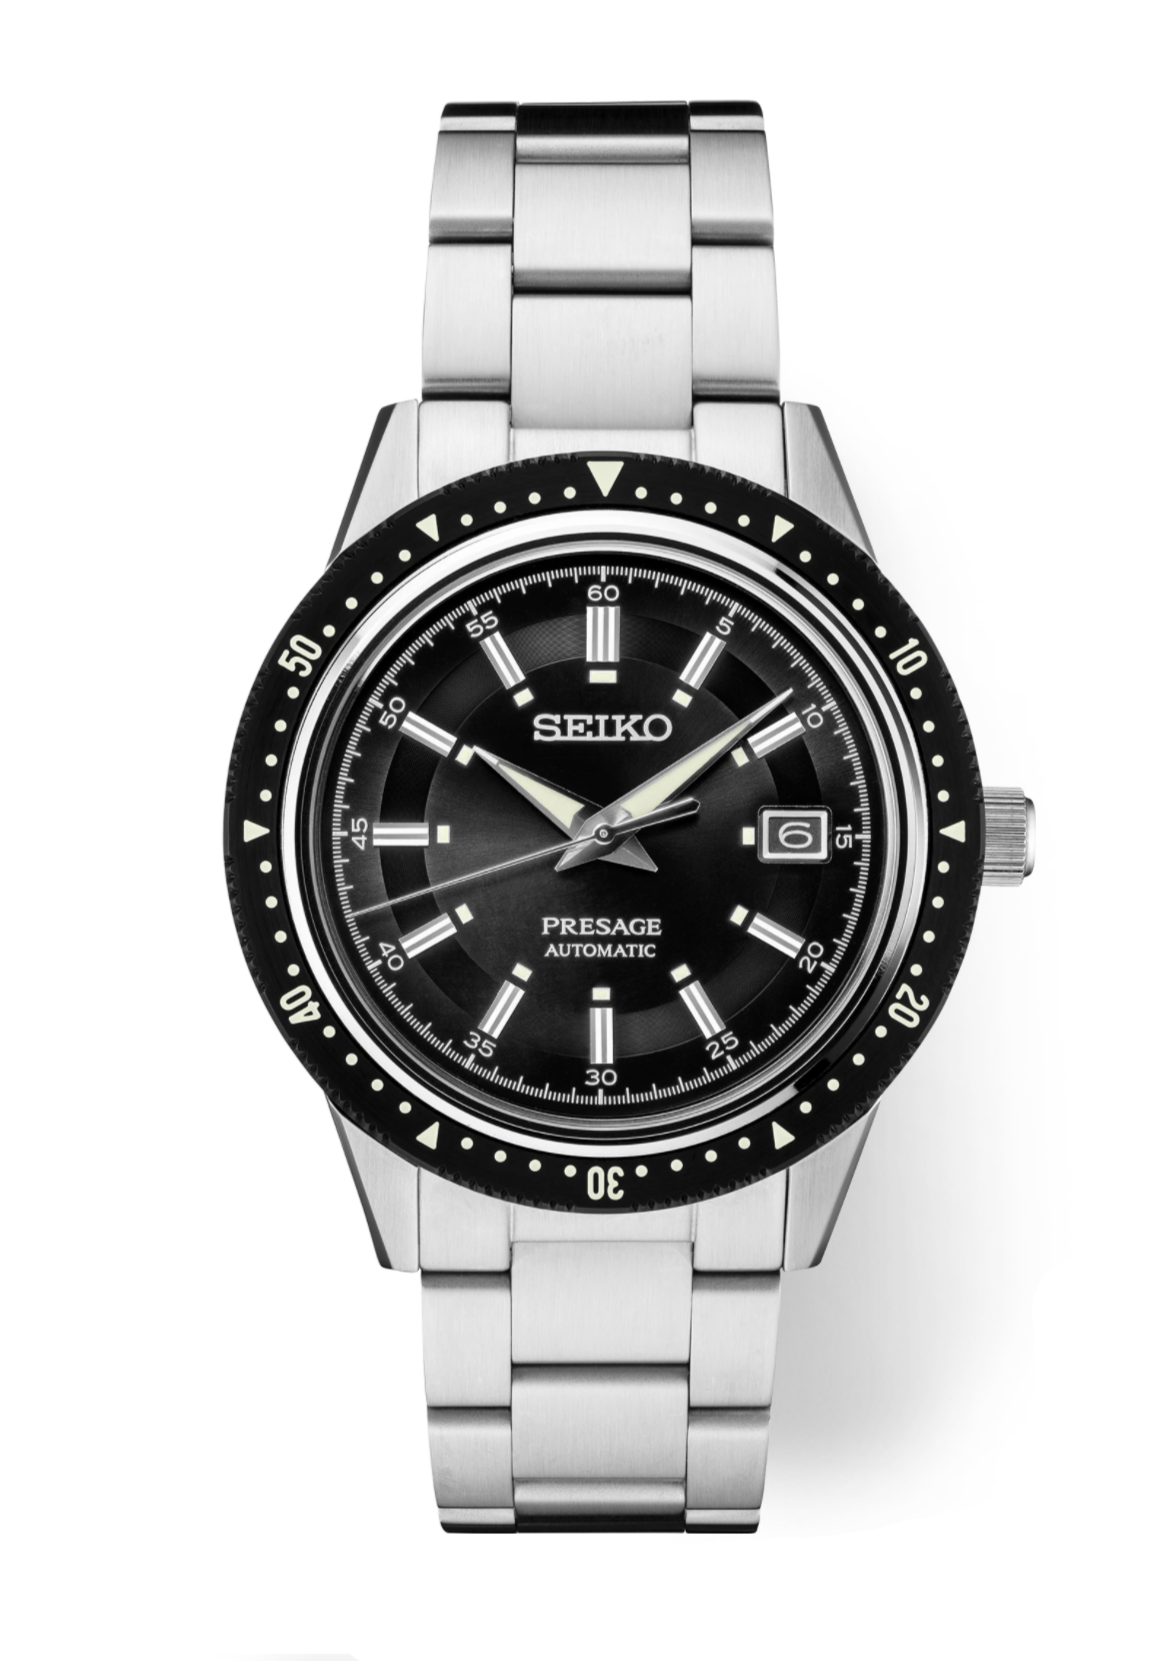 Seiko Presage Limited Edition Automatic Watch with Black Dial